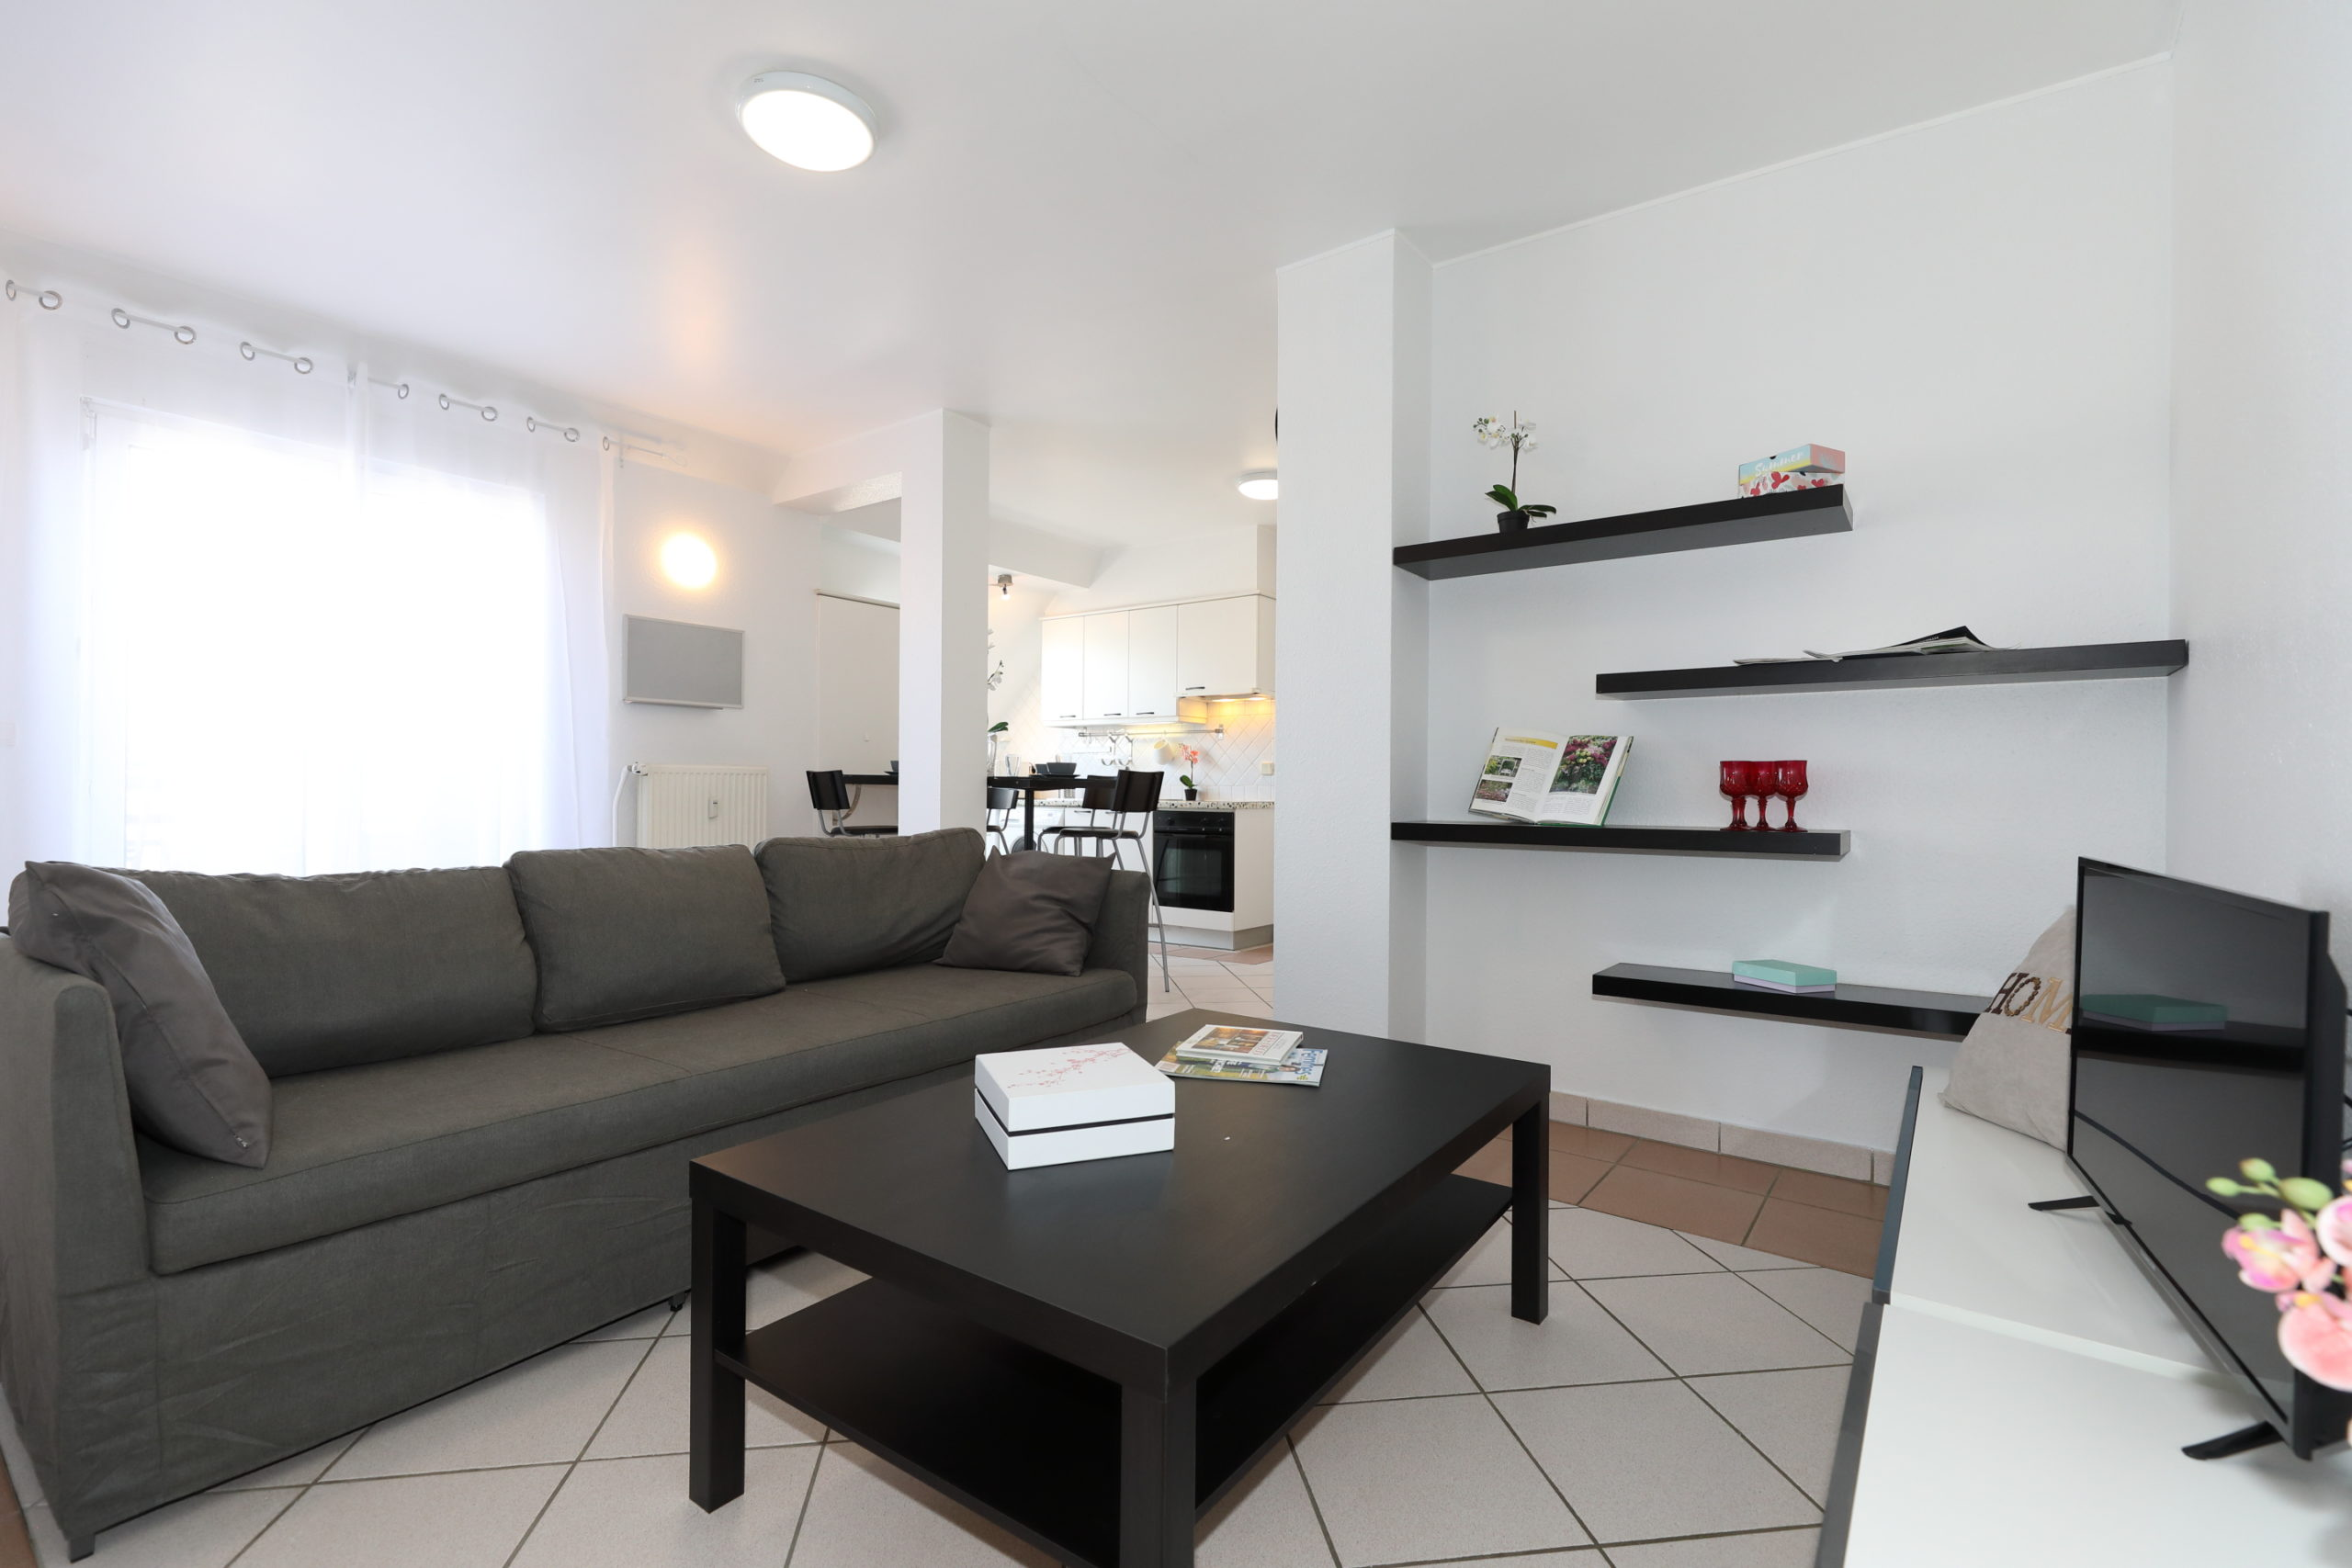 1 bedroom apartment in Hollerich – HOL 20